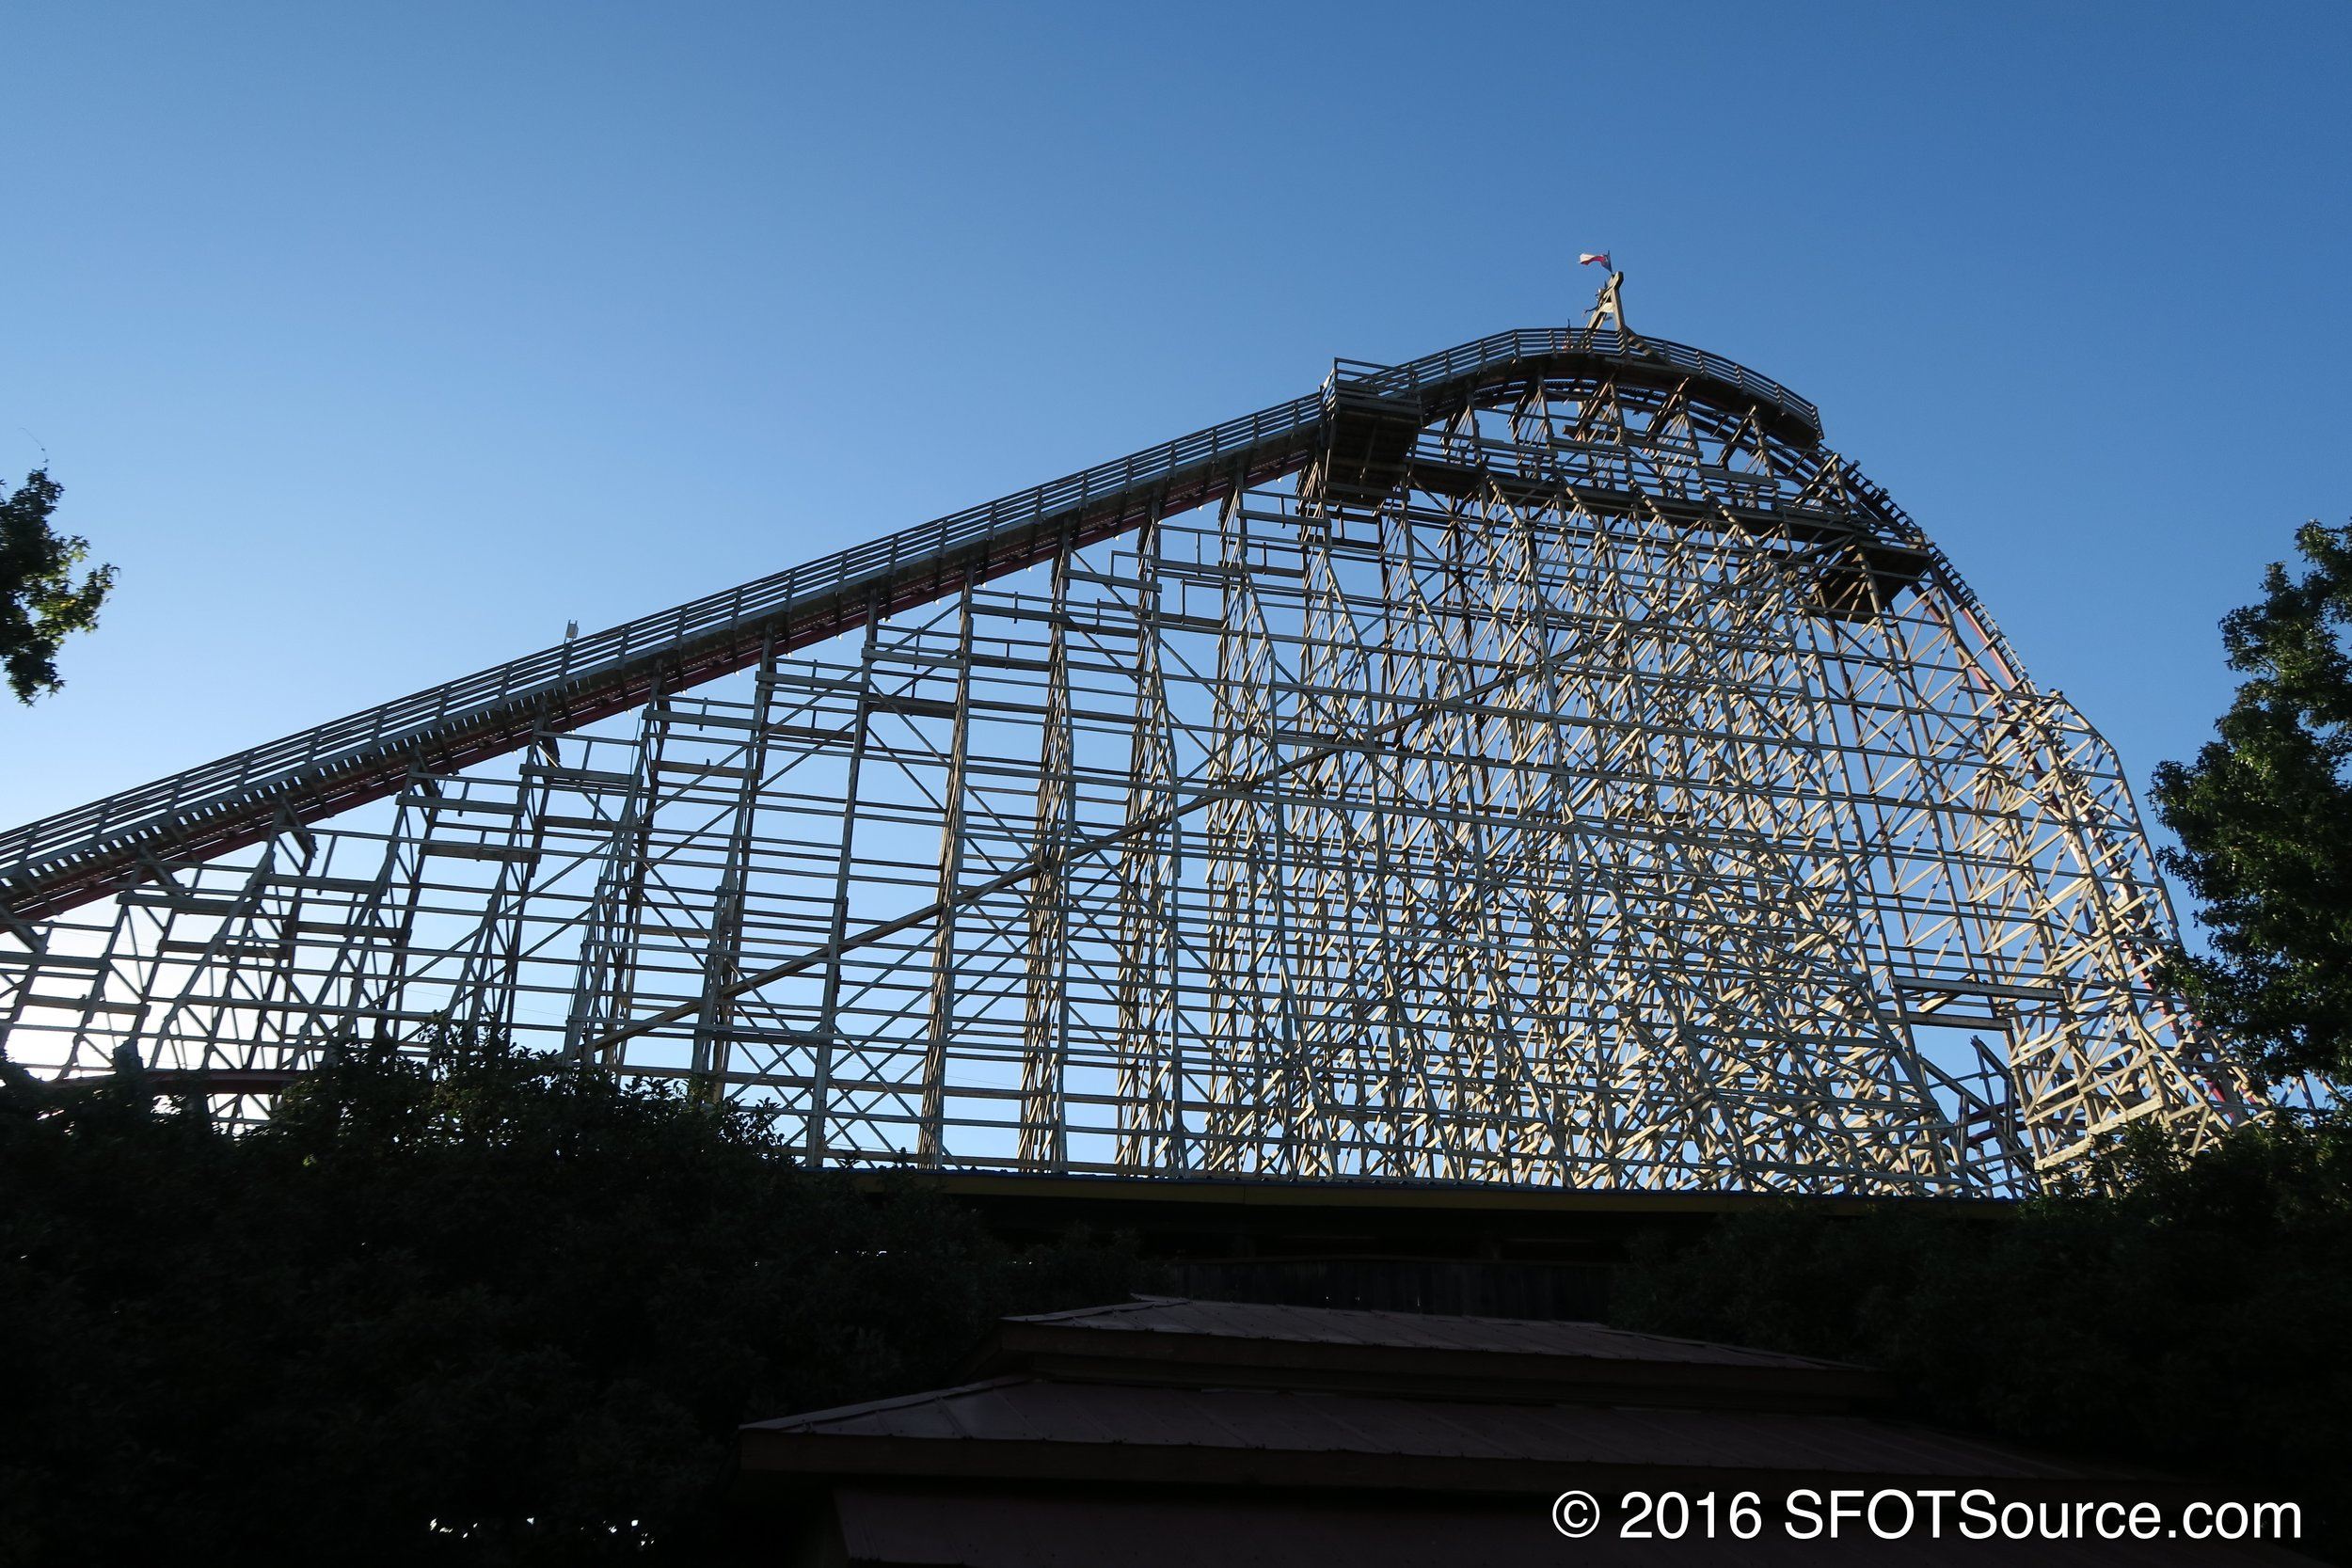 New Texas Giant's lift hill.